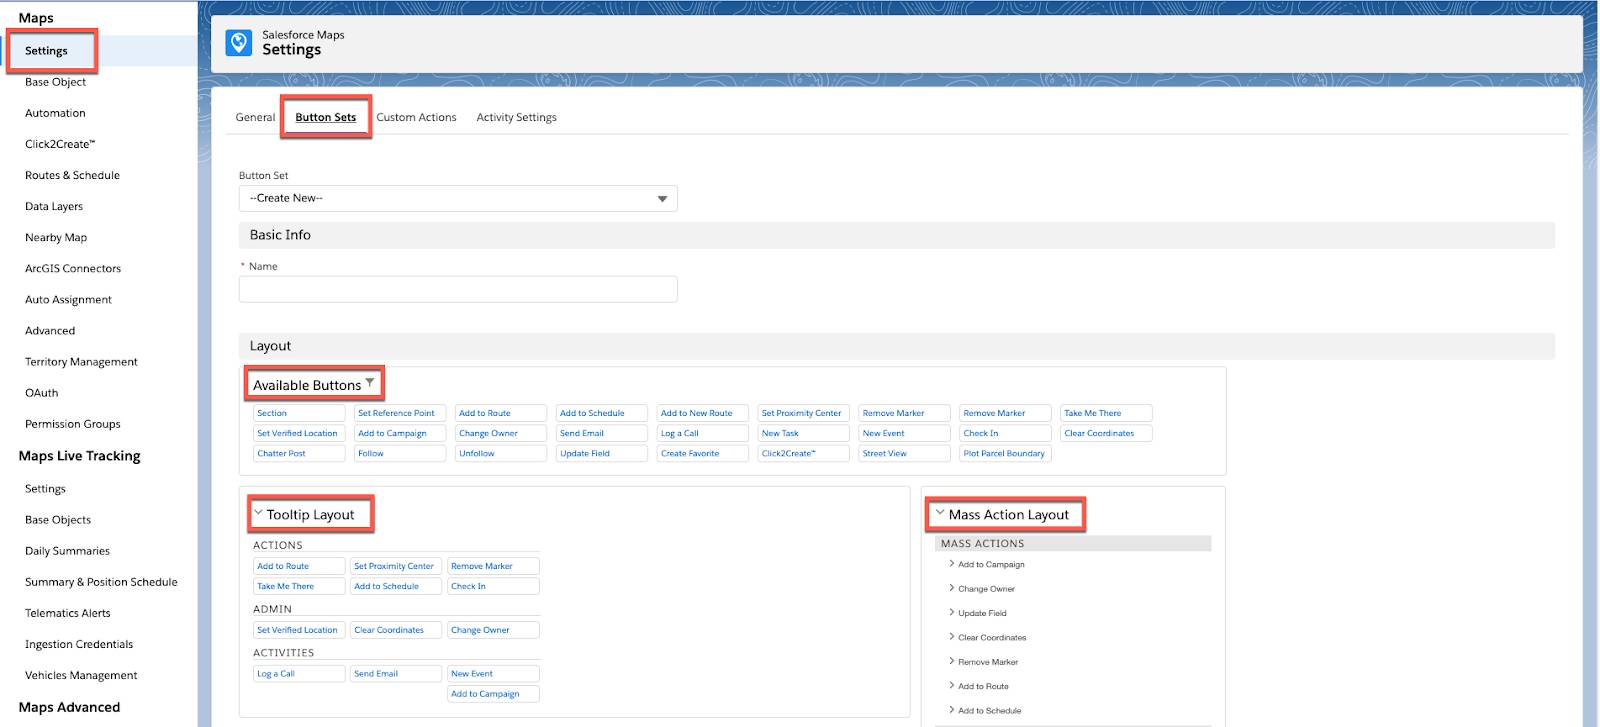 Screenshot shows the Salesforce Maps Button Sets settings page.